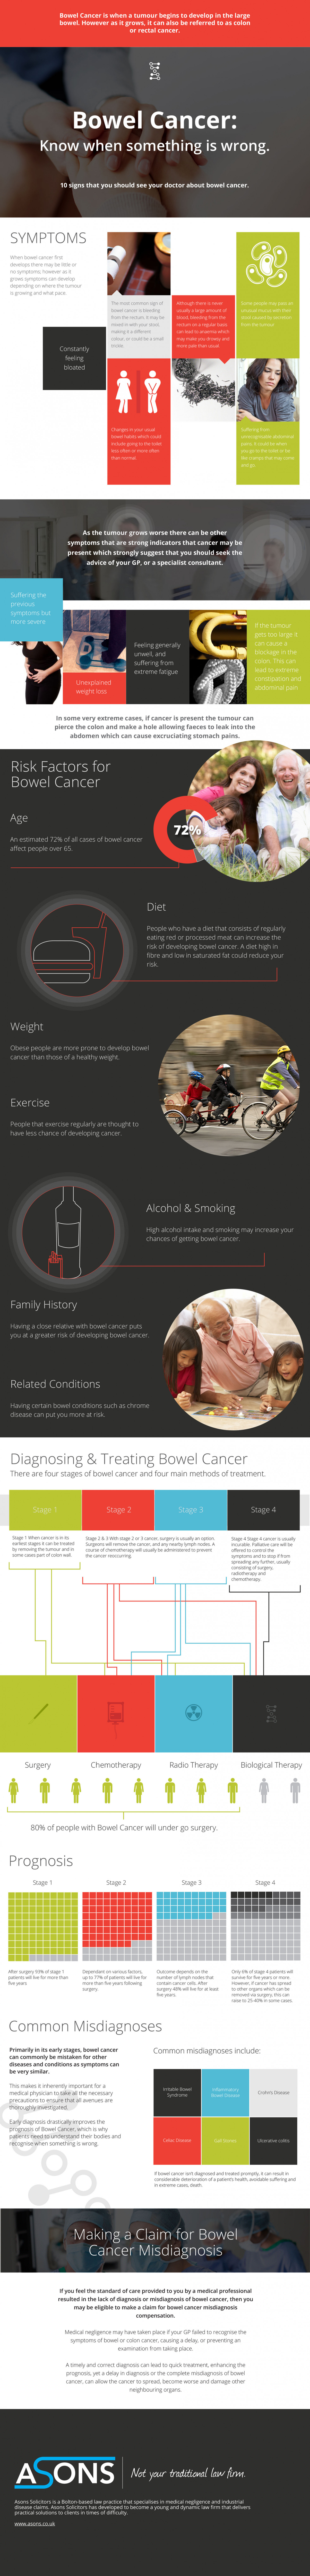 Bowel Cancer- Know when Something is Wrong Infographic